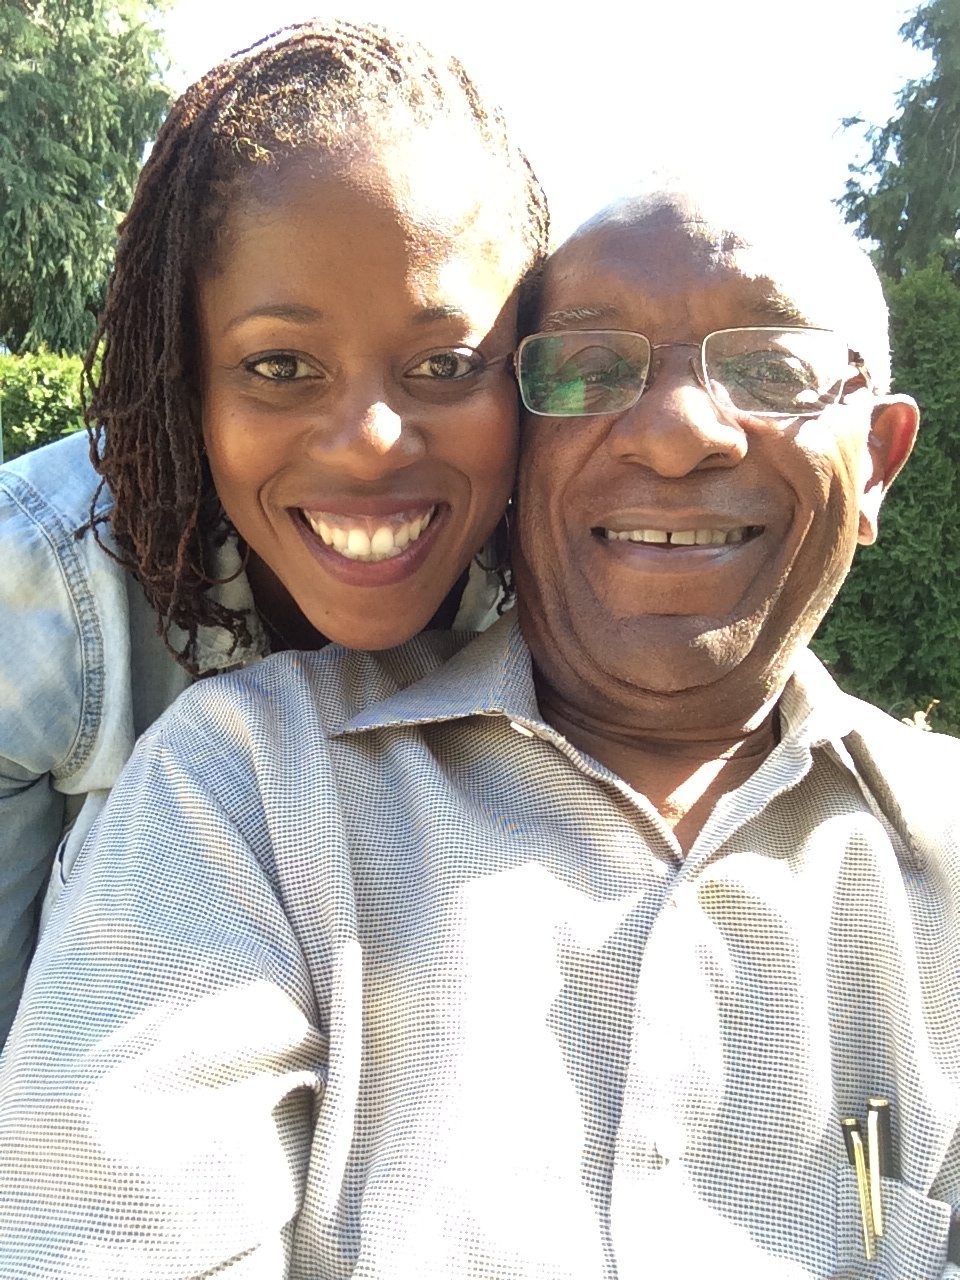 An African American daughter and father smiling.